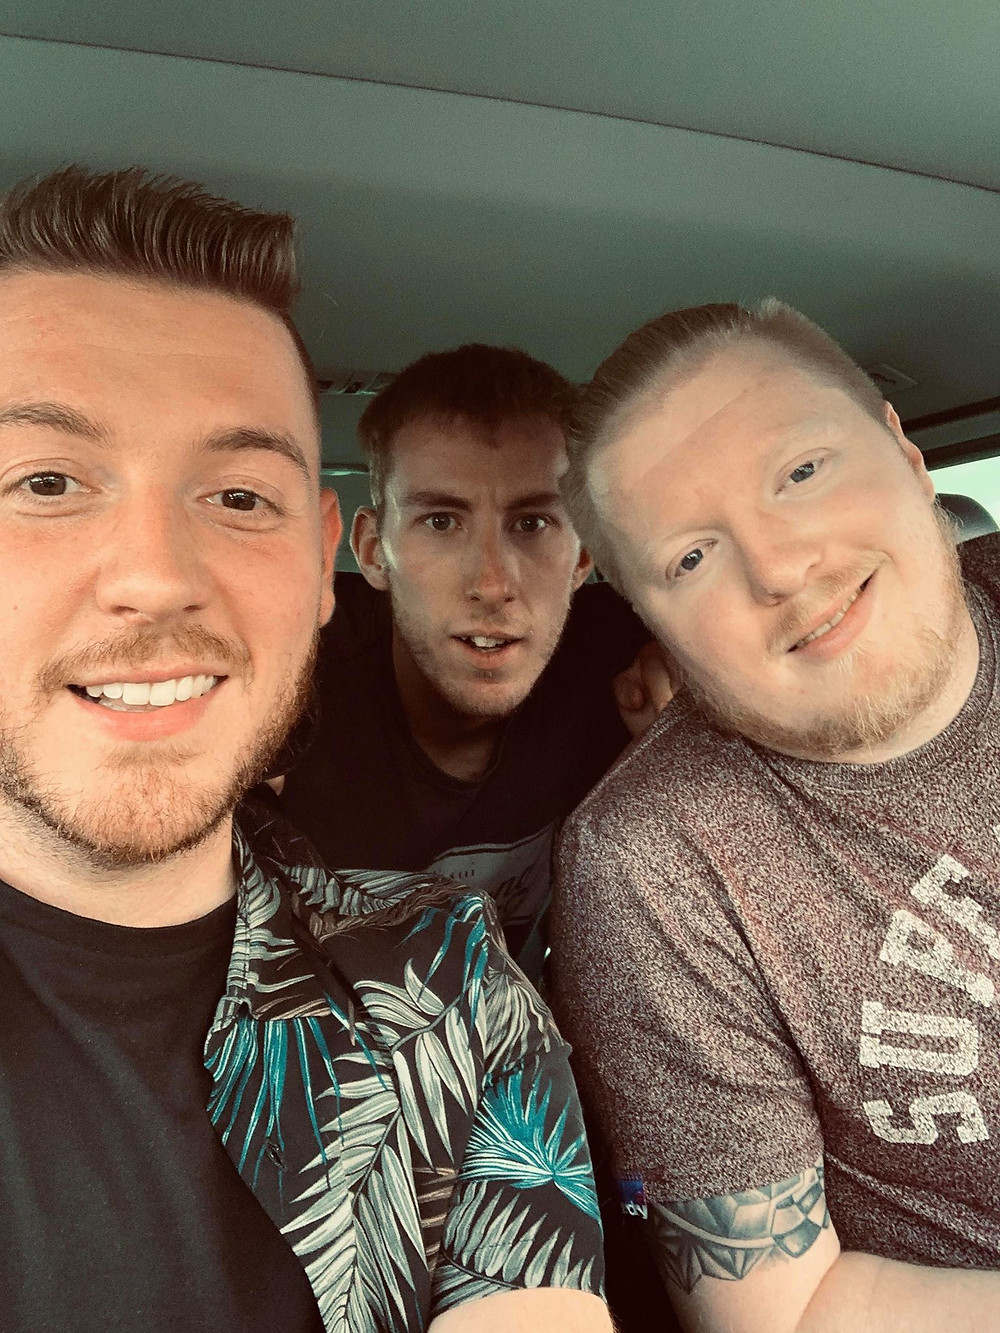 A selfie taken inside the car of Ross and his friends Mark and James